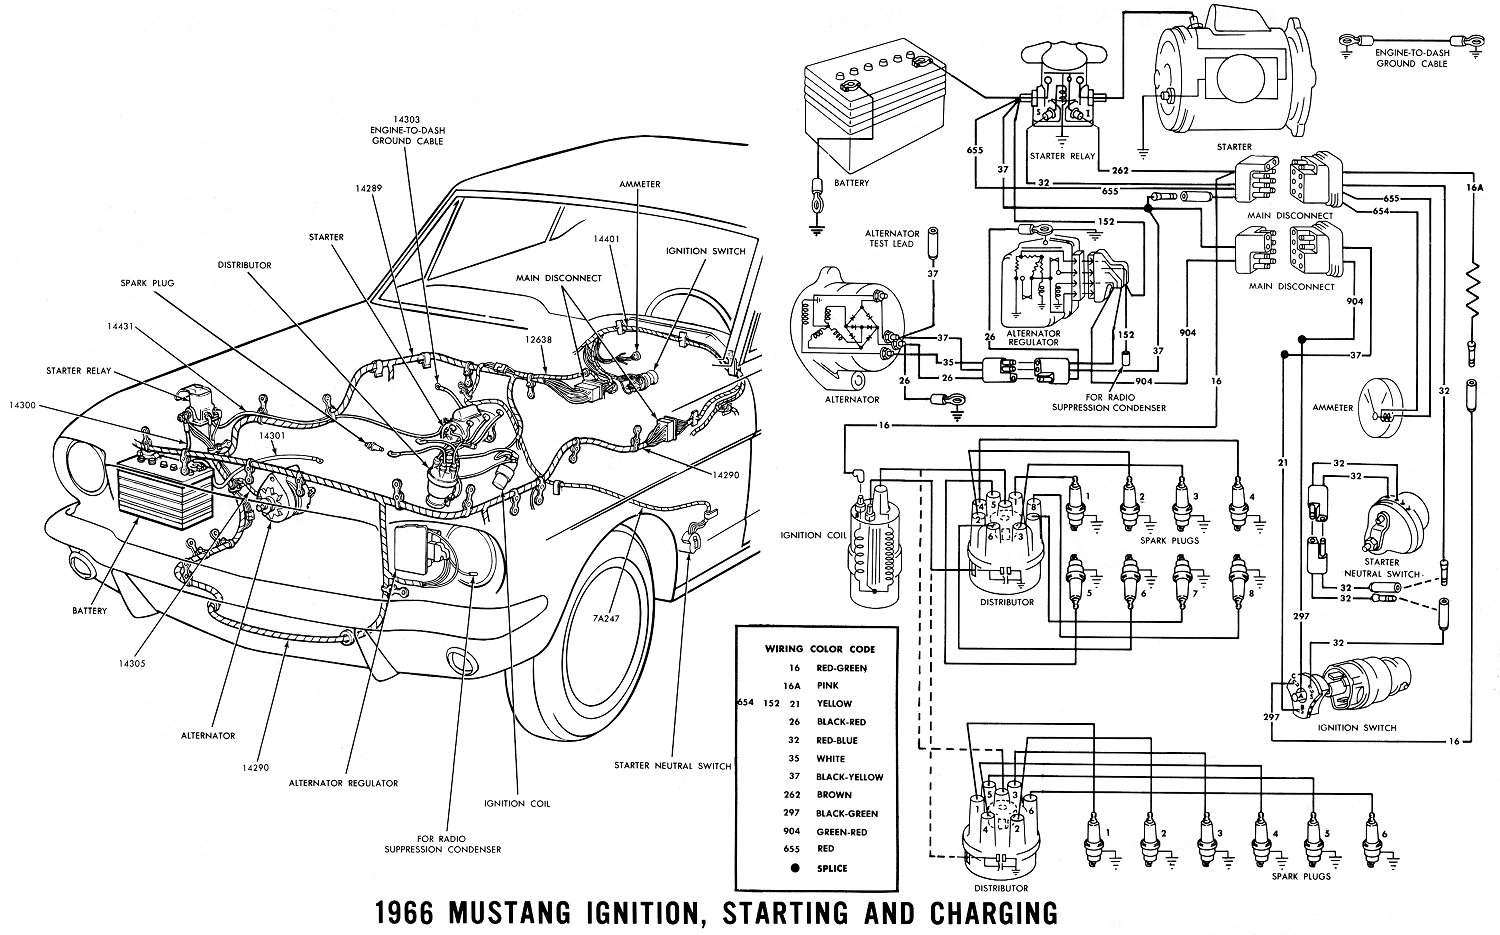 Mustang Part Diagram 10 Brt Feba Arbeitsvermittlung De U2022 1965 Parts